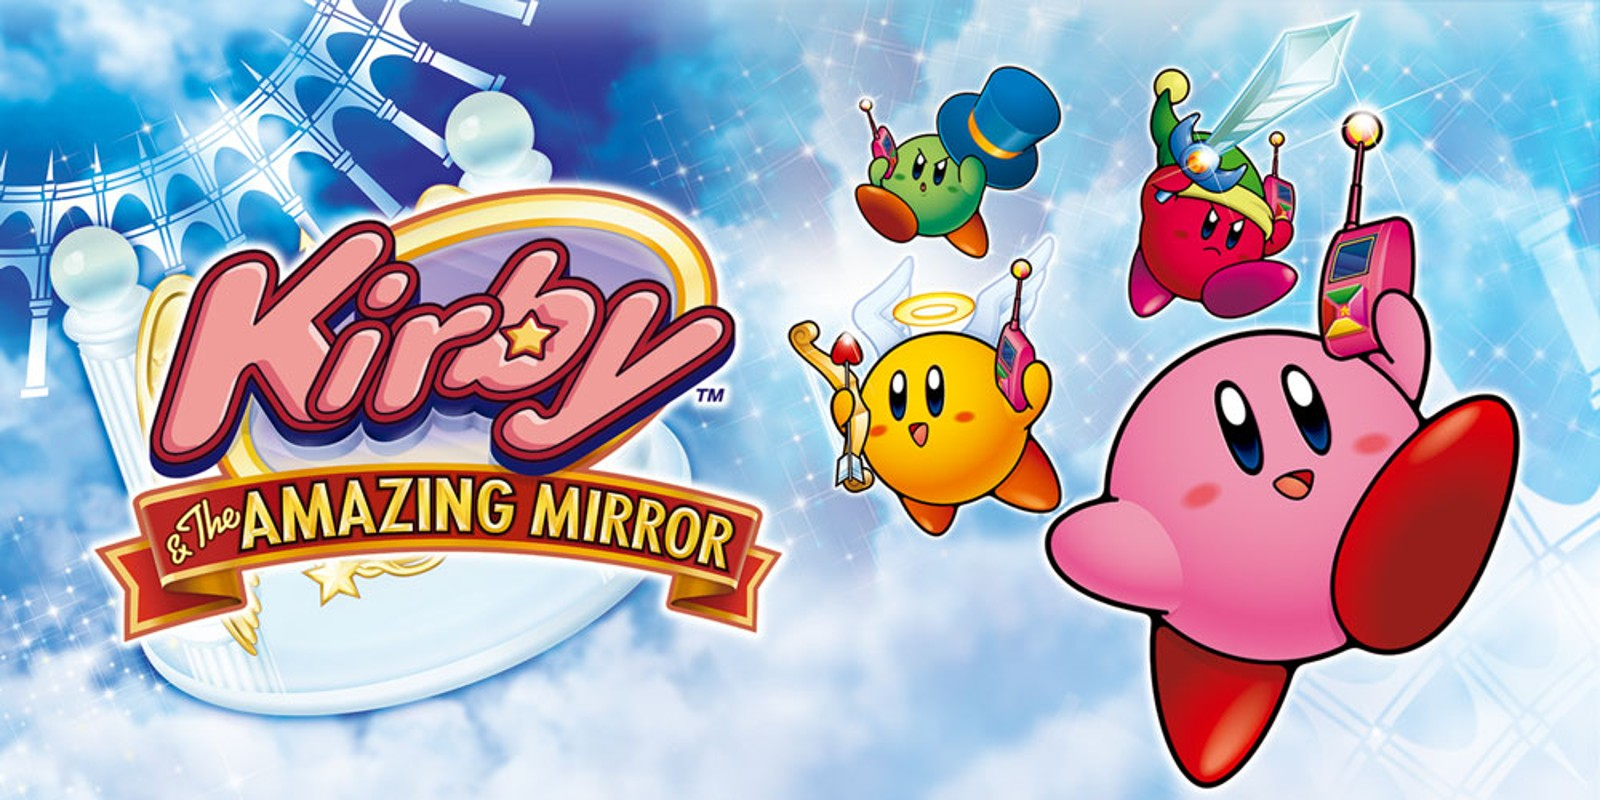 Kirby Amazing Mirror